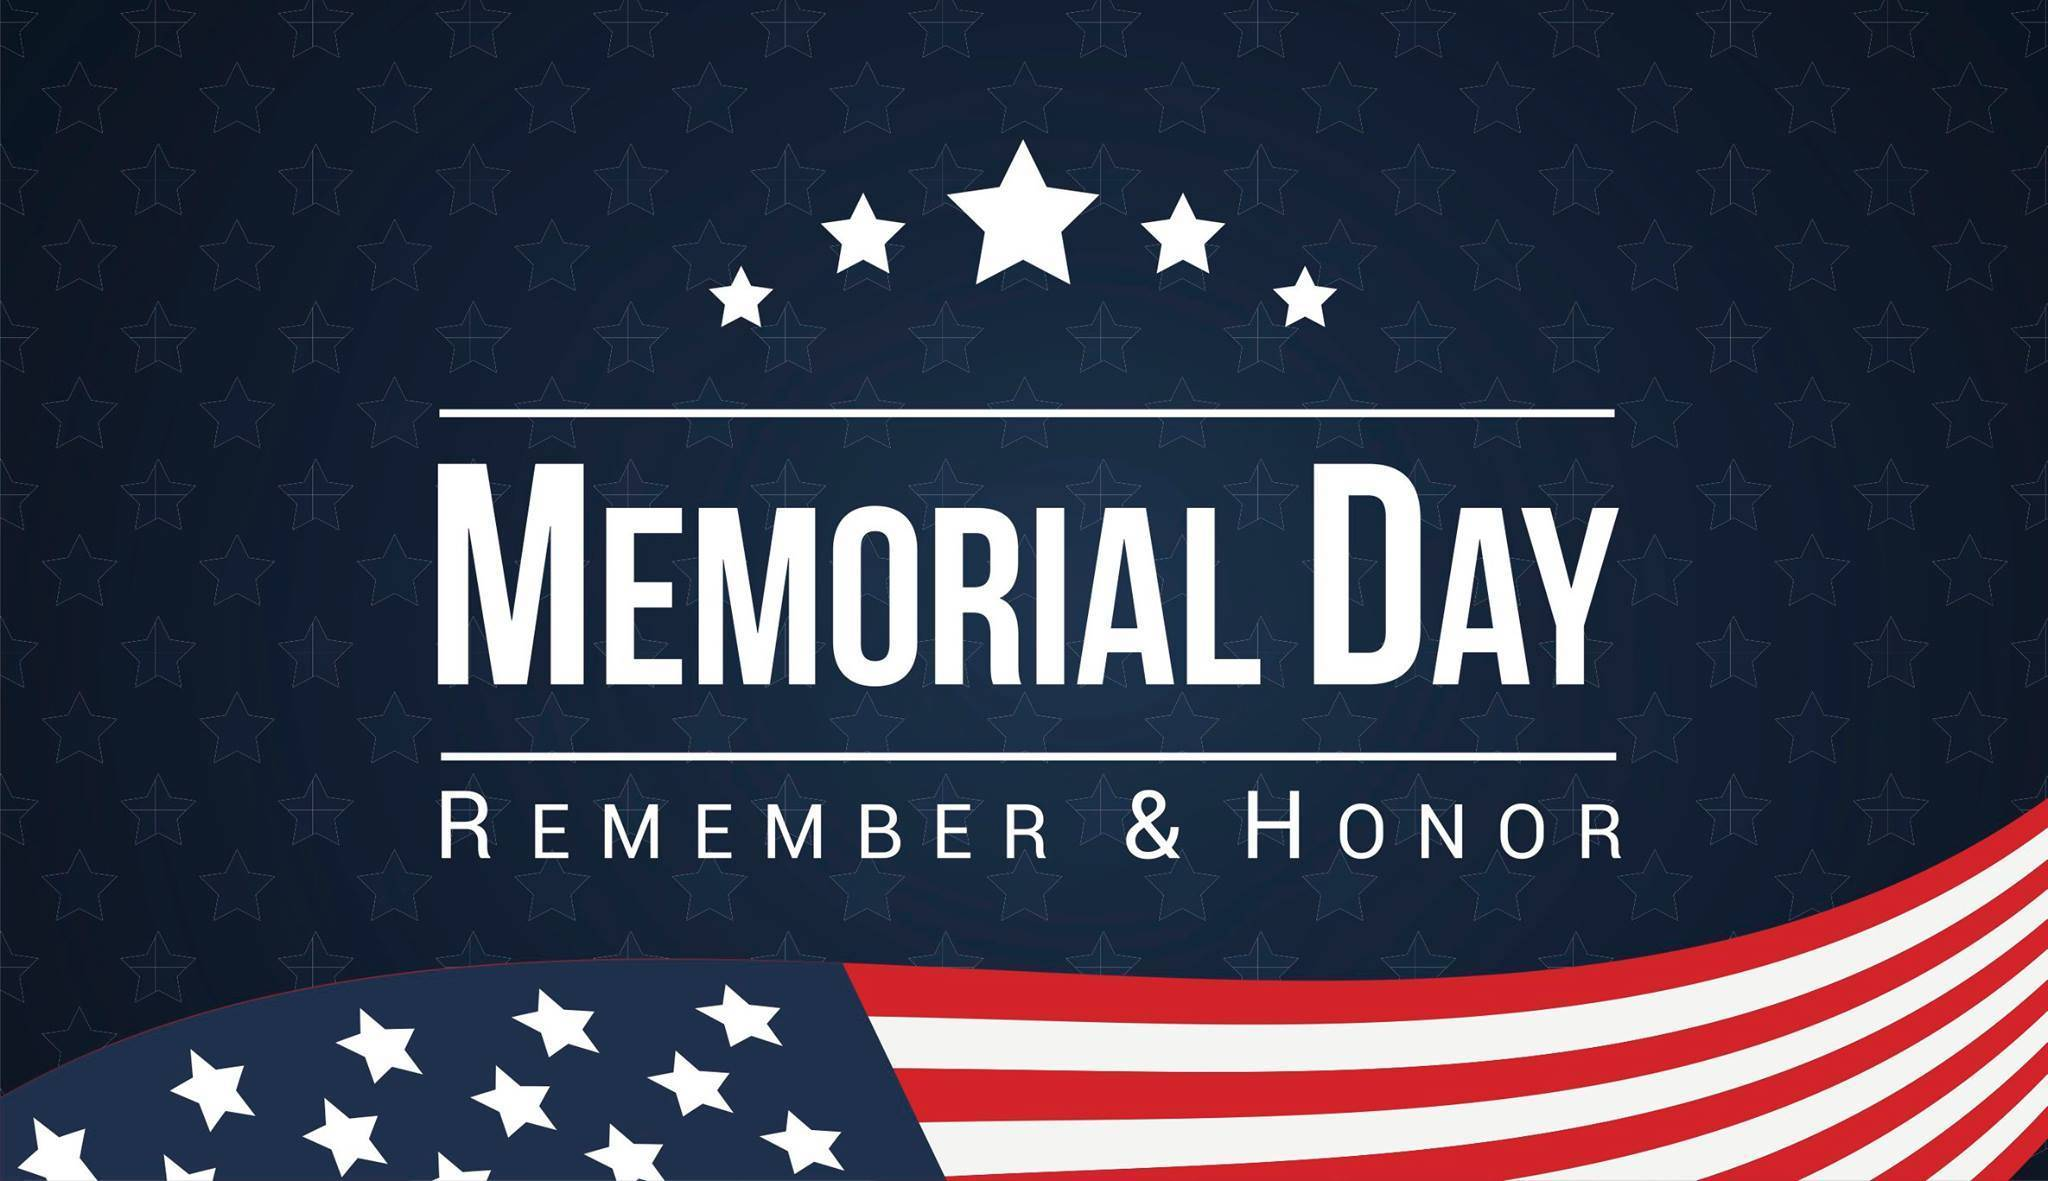 PENFIELD PUBLIC LIBRARY CLOSED MEMORIAL DAY WEEKEND